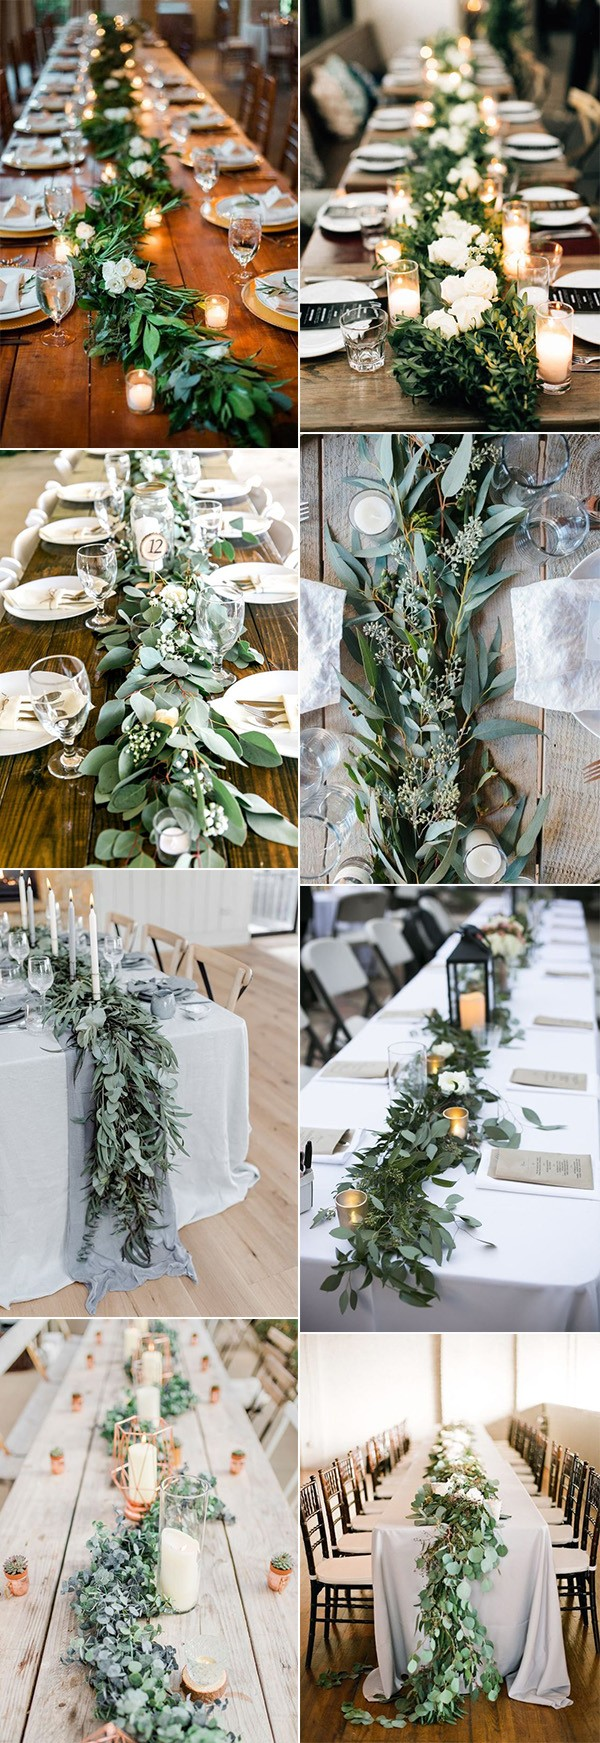 chic wedding table setting ideas with greenery garland